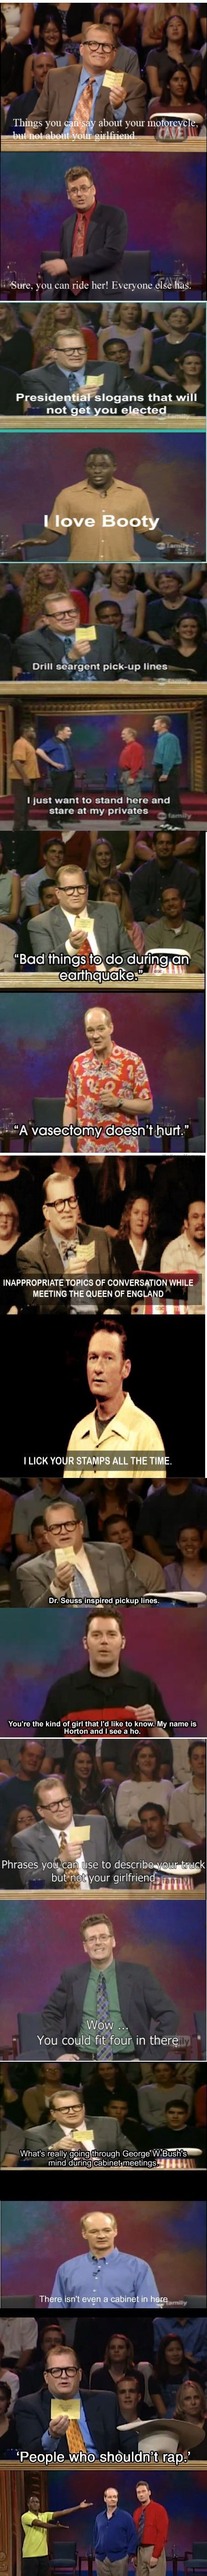 """""""Whose Line Is It Anyway?"""" Funny Compilation Wish Drew Carey would host again!"""